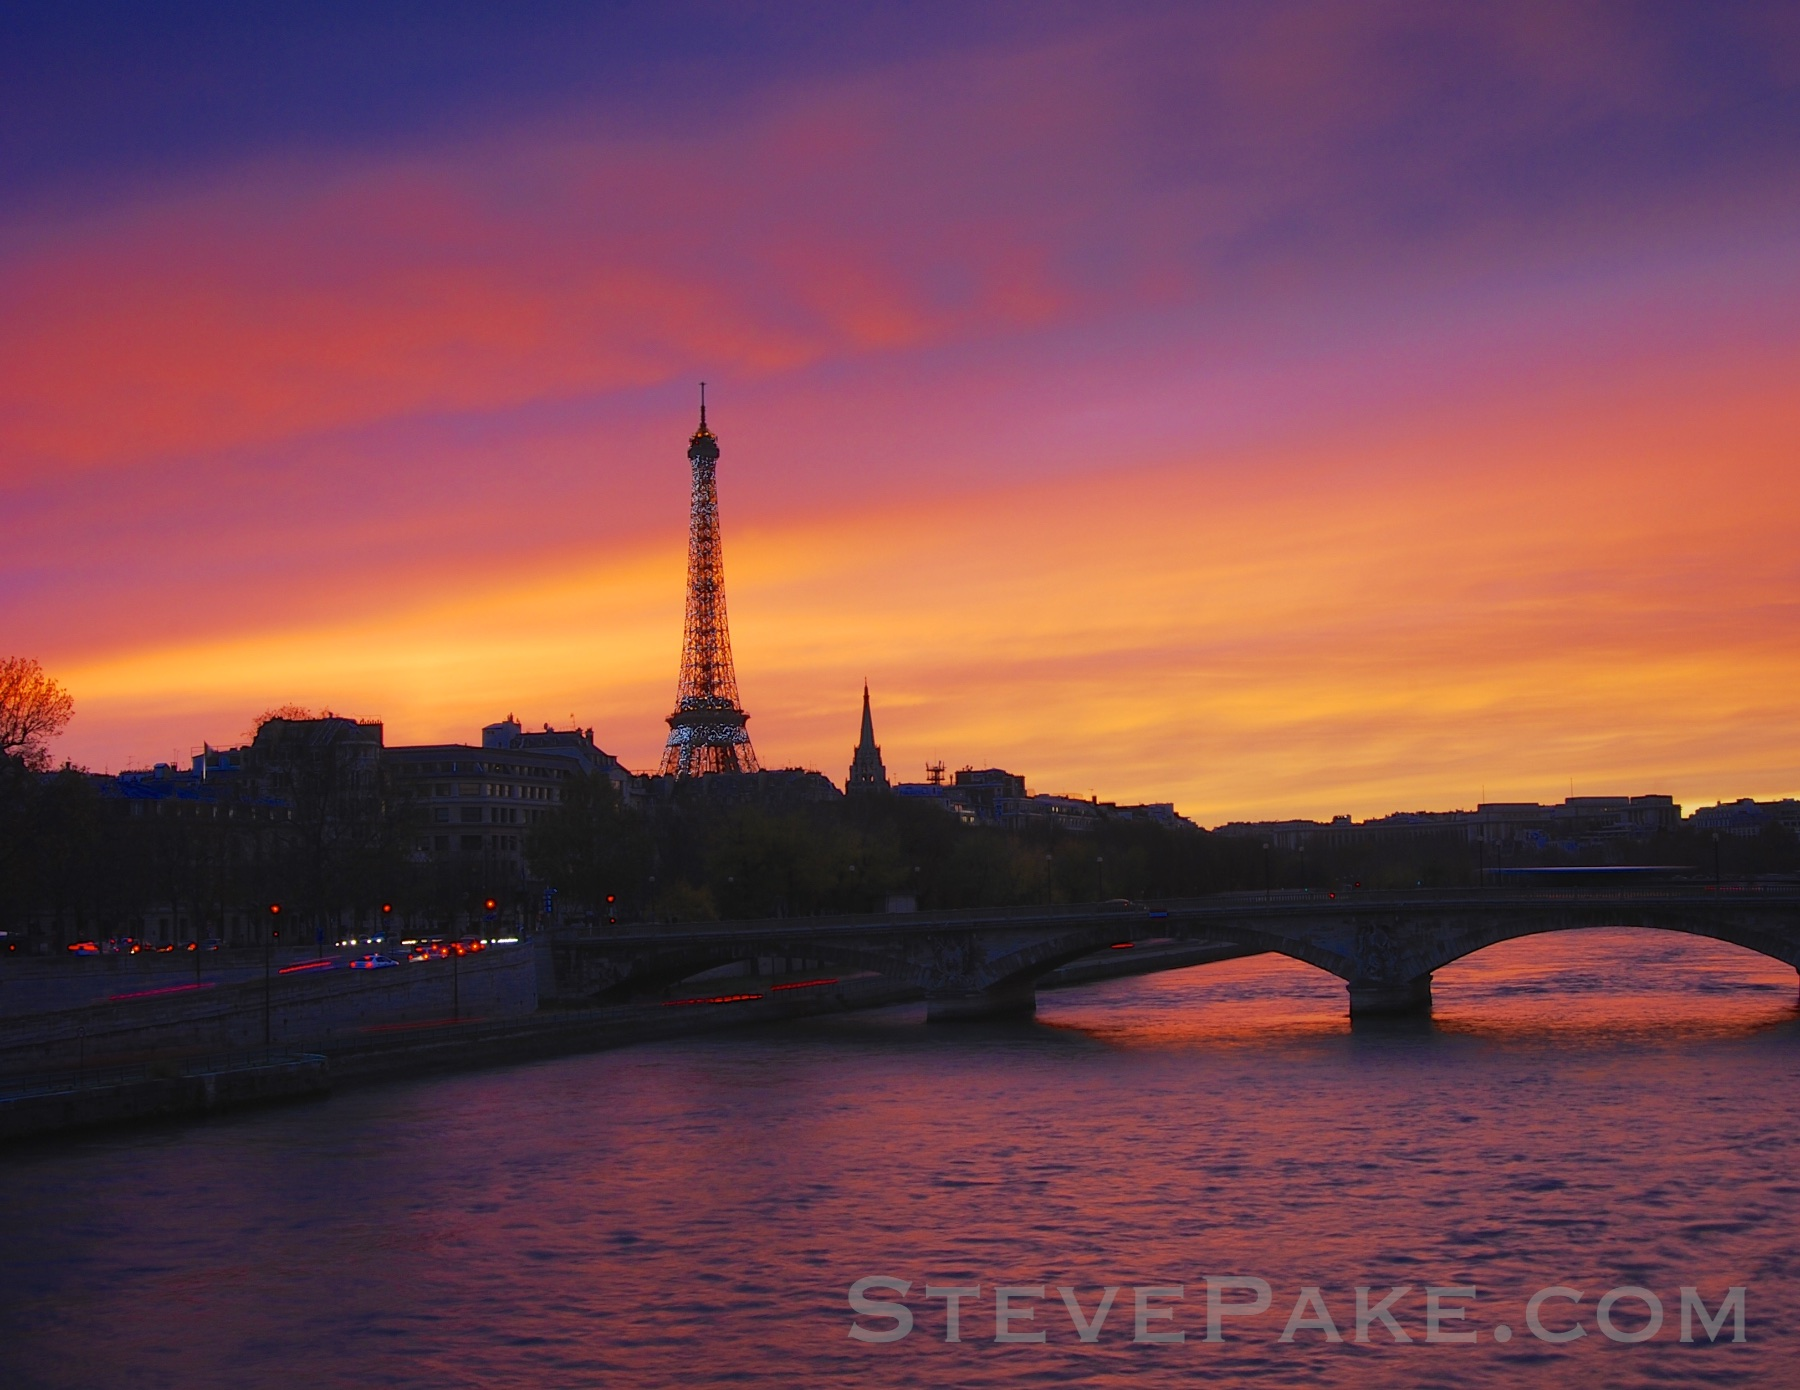 """Via """" The Secrets To Getting Great Photos """", my shot of the Eiffel Tower in Paris with my first DSLR, a Nikon D80, and its 18-55mm kit lens. I was at exactly the right place at exactly the right time, lucked out with some amazing atmospheric effects as the sun set, and that made this photo more than having one lens or another did."""